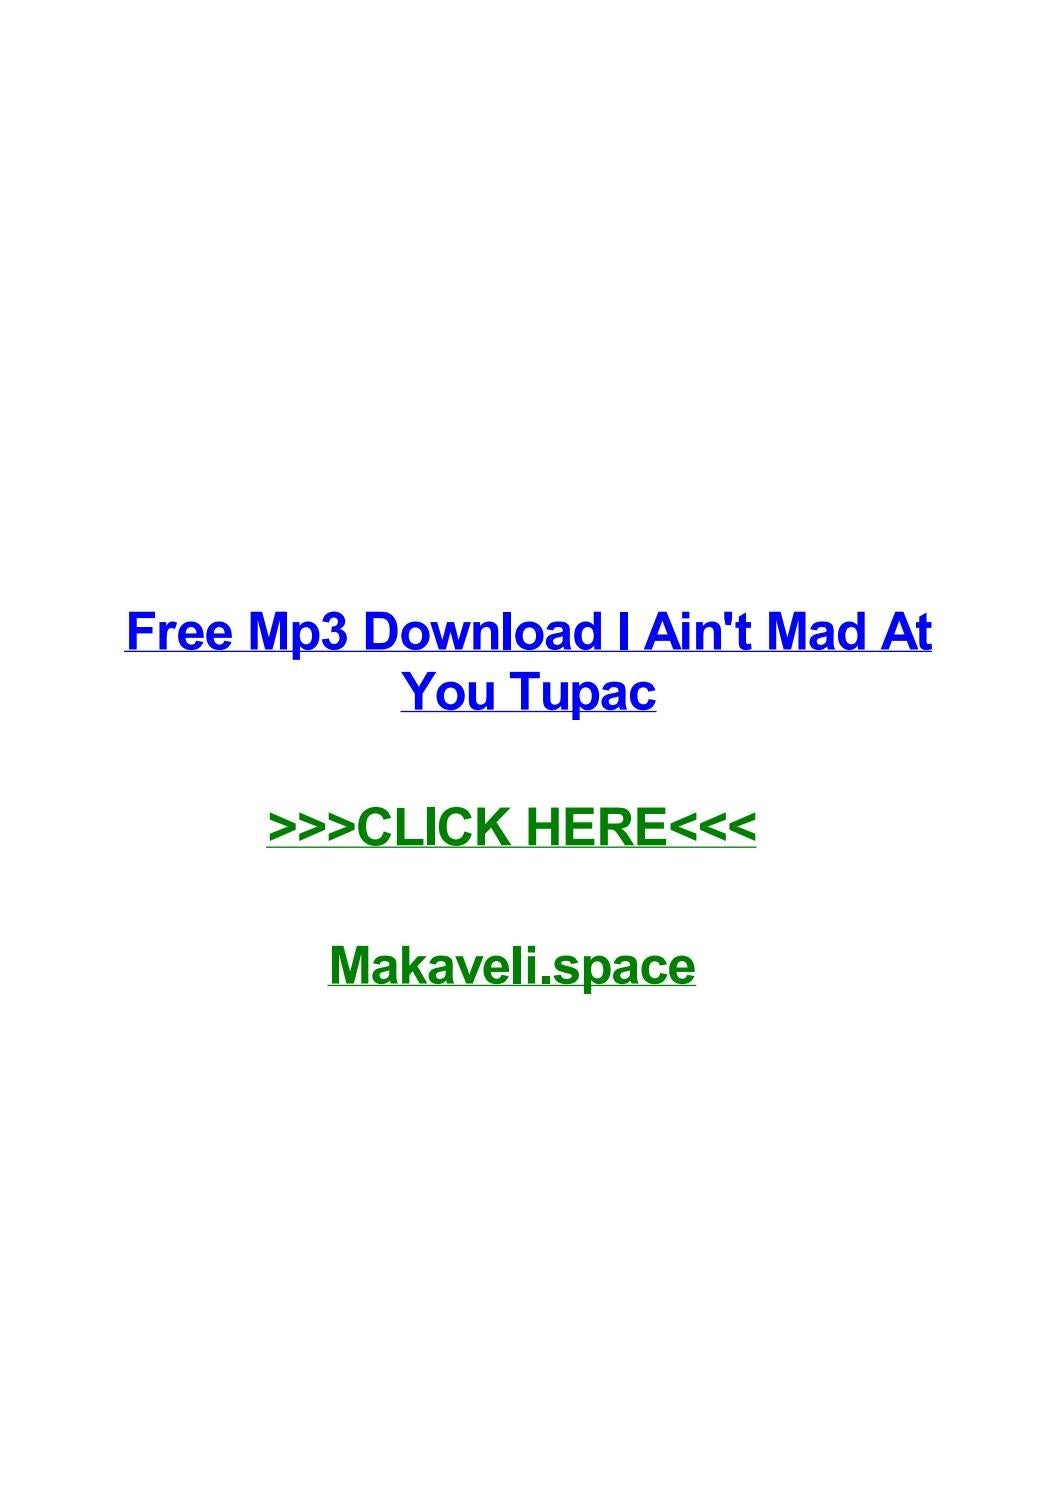 Free mp3 download i aint mad at you tupac by joelyhka - issuu